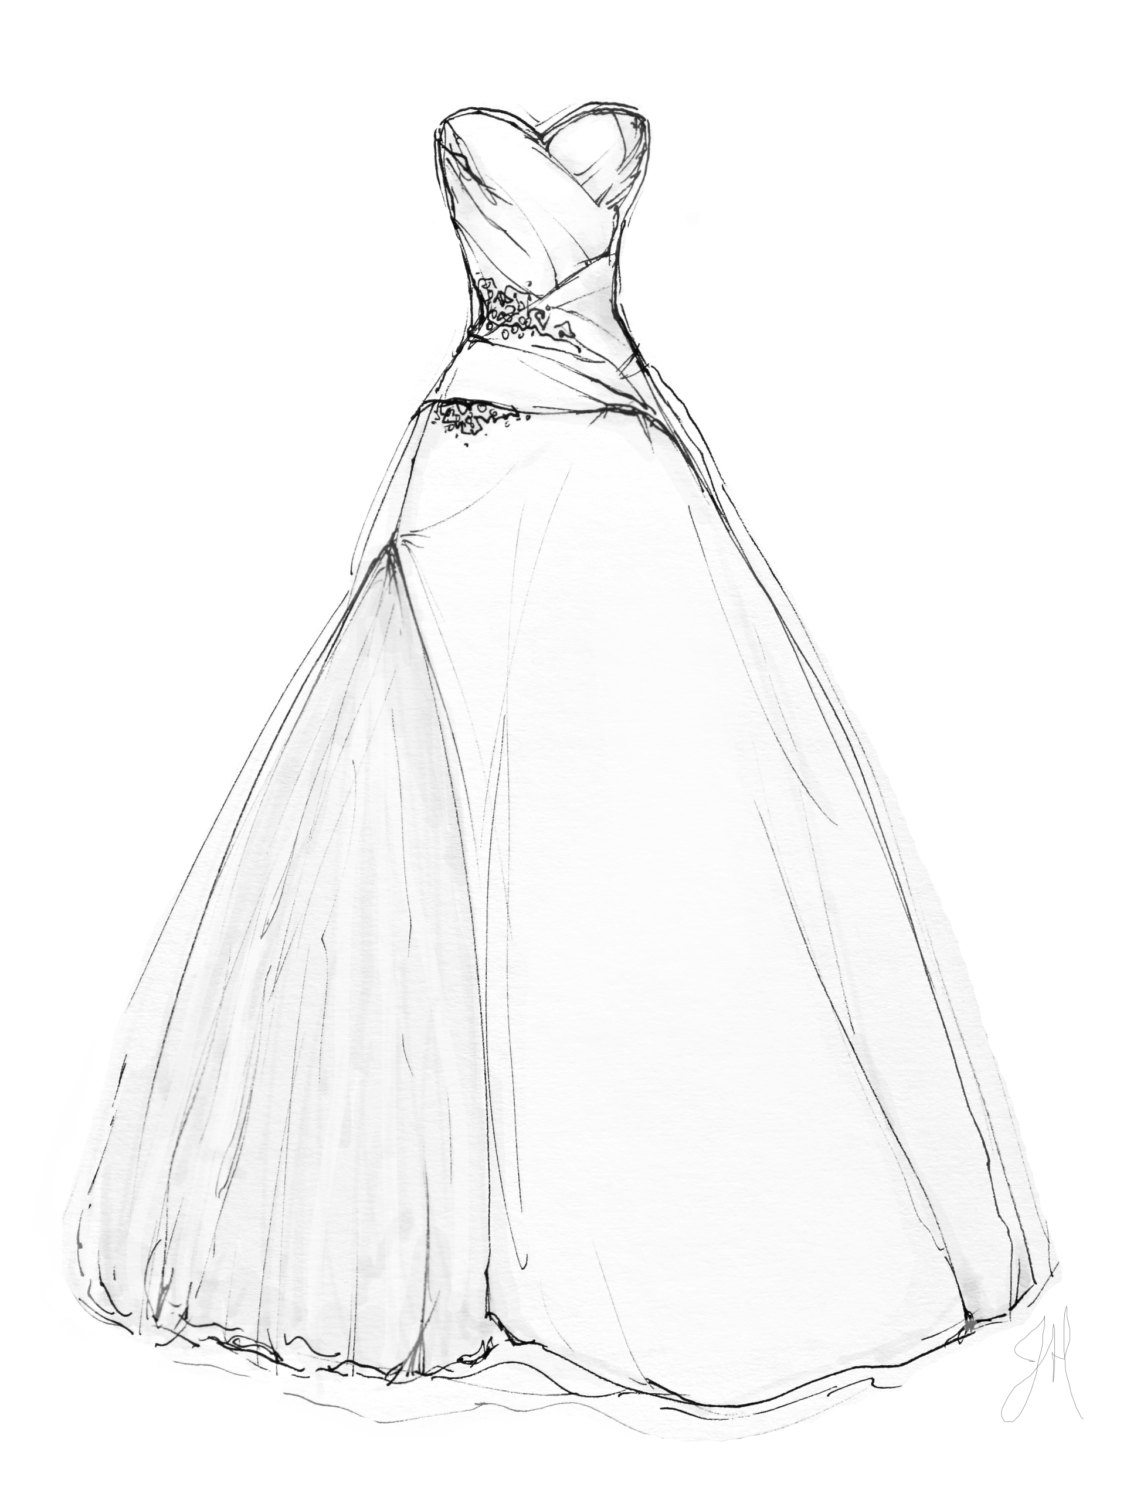 1137x1500 Drawing Of Wedding Dress Sketches Of Wedding Dresses